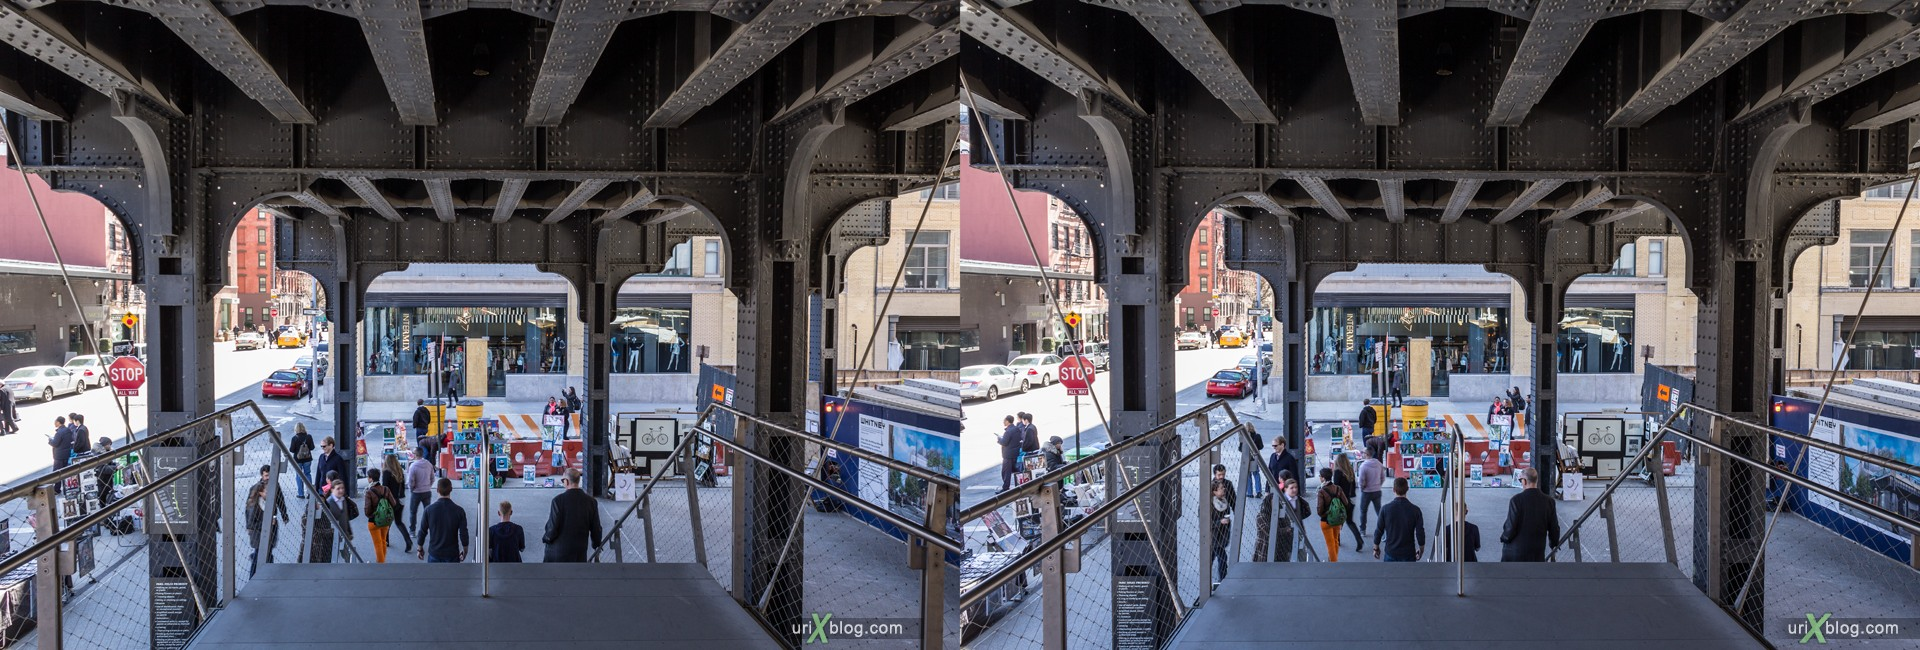 2013, High Line, park, railway, people, NYC, New York, Manhattan, USA, 3D, stereo pair, cross-eyed, crossview, cross view stereo pair, stereoscopic